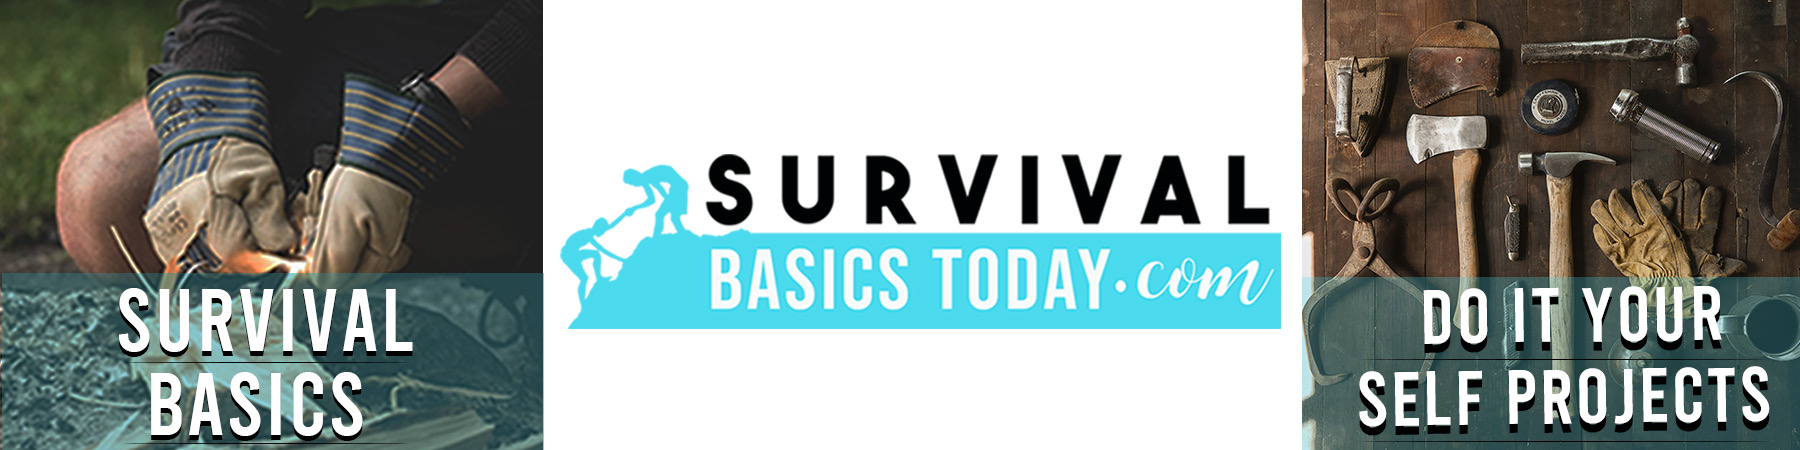 Survival Basics Today